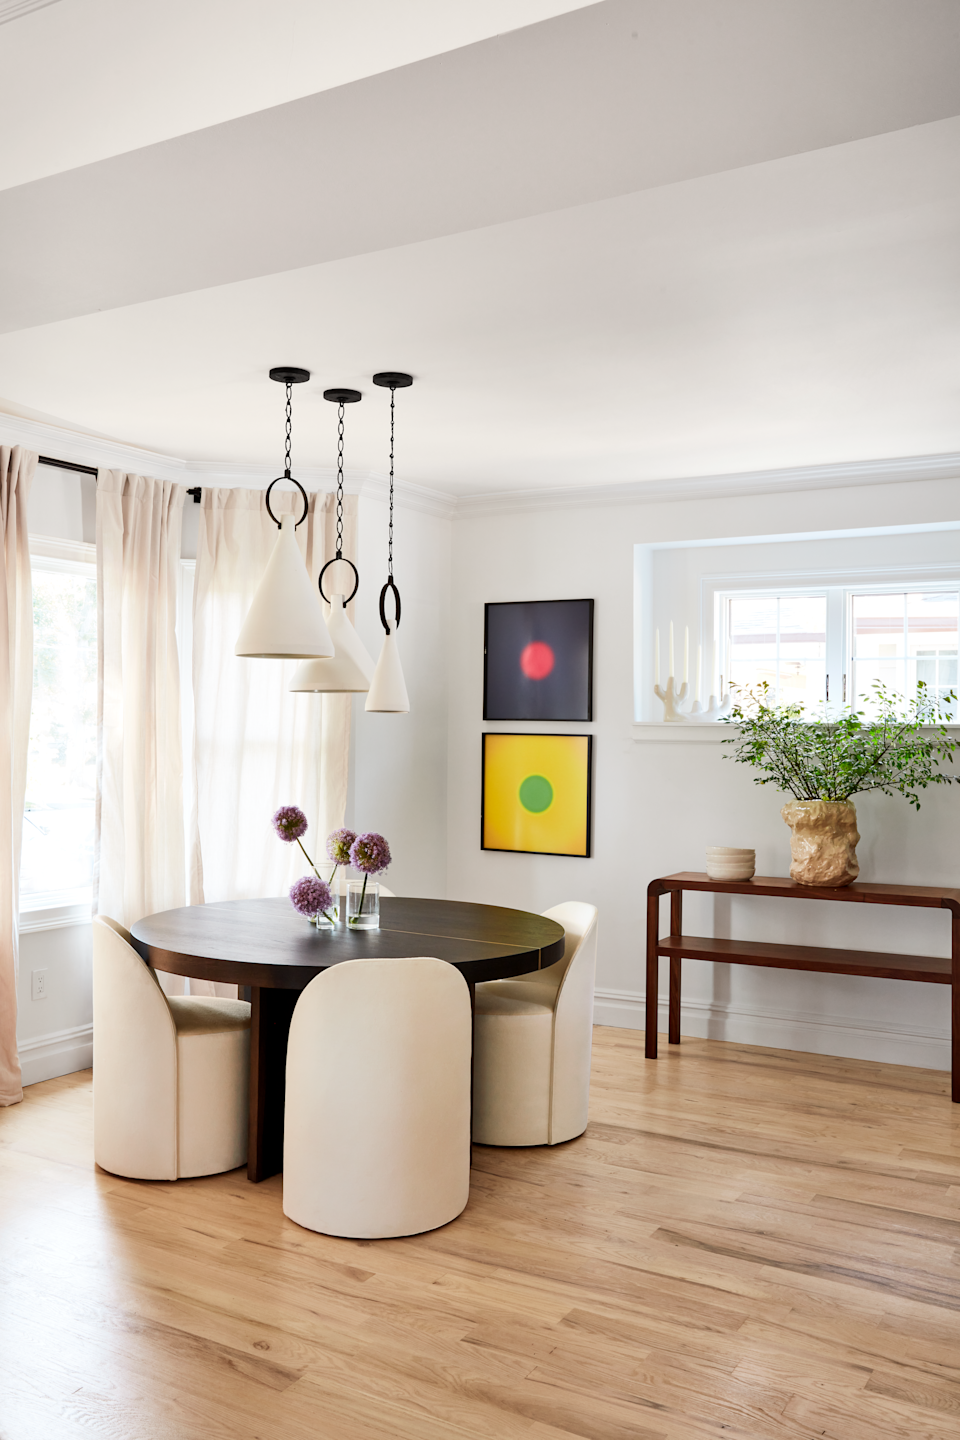 Dining table with pendant lights overhead